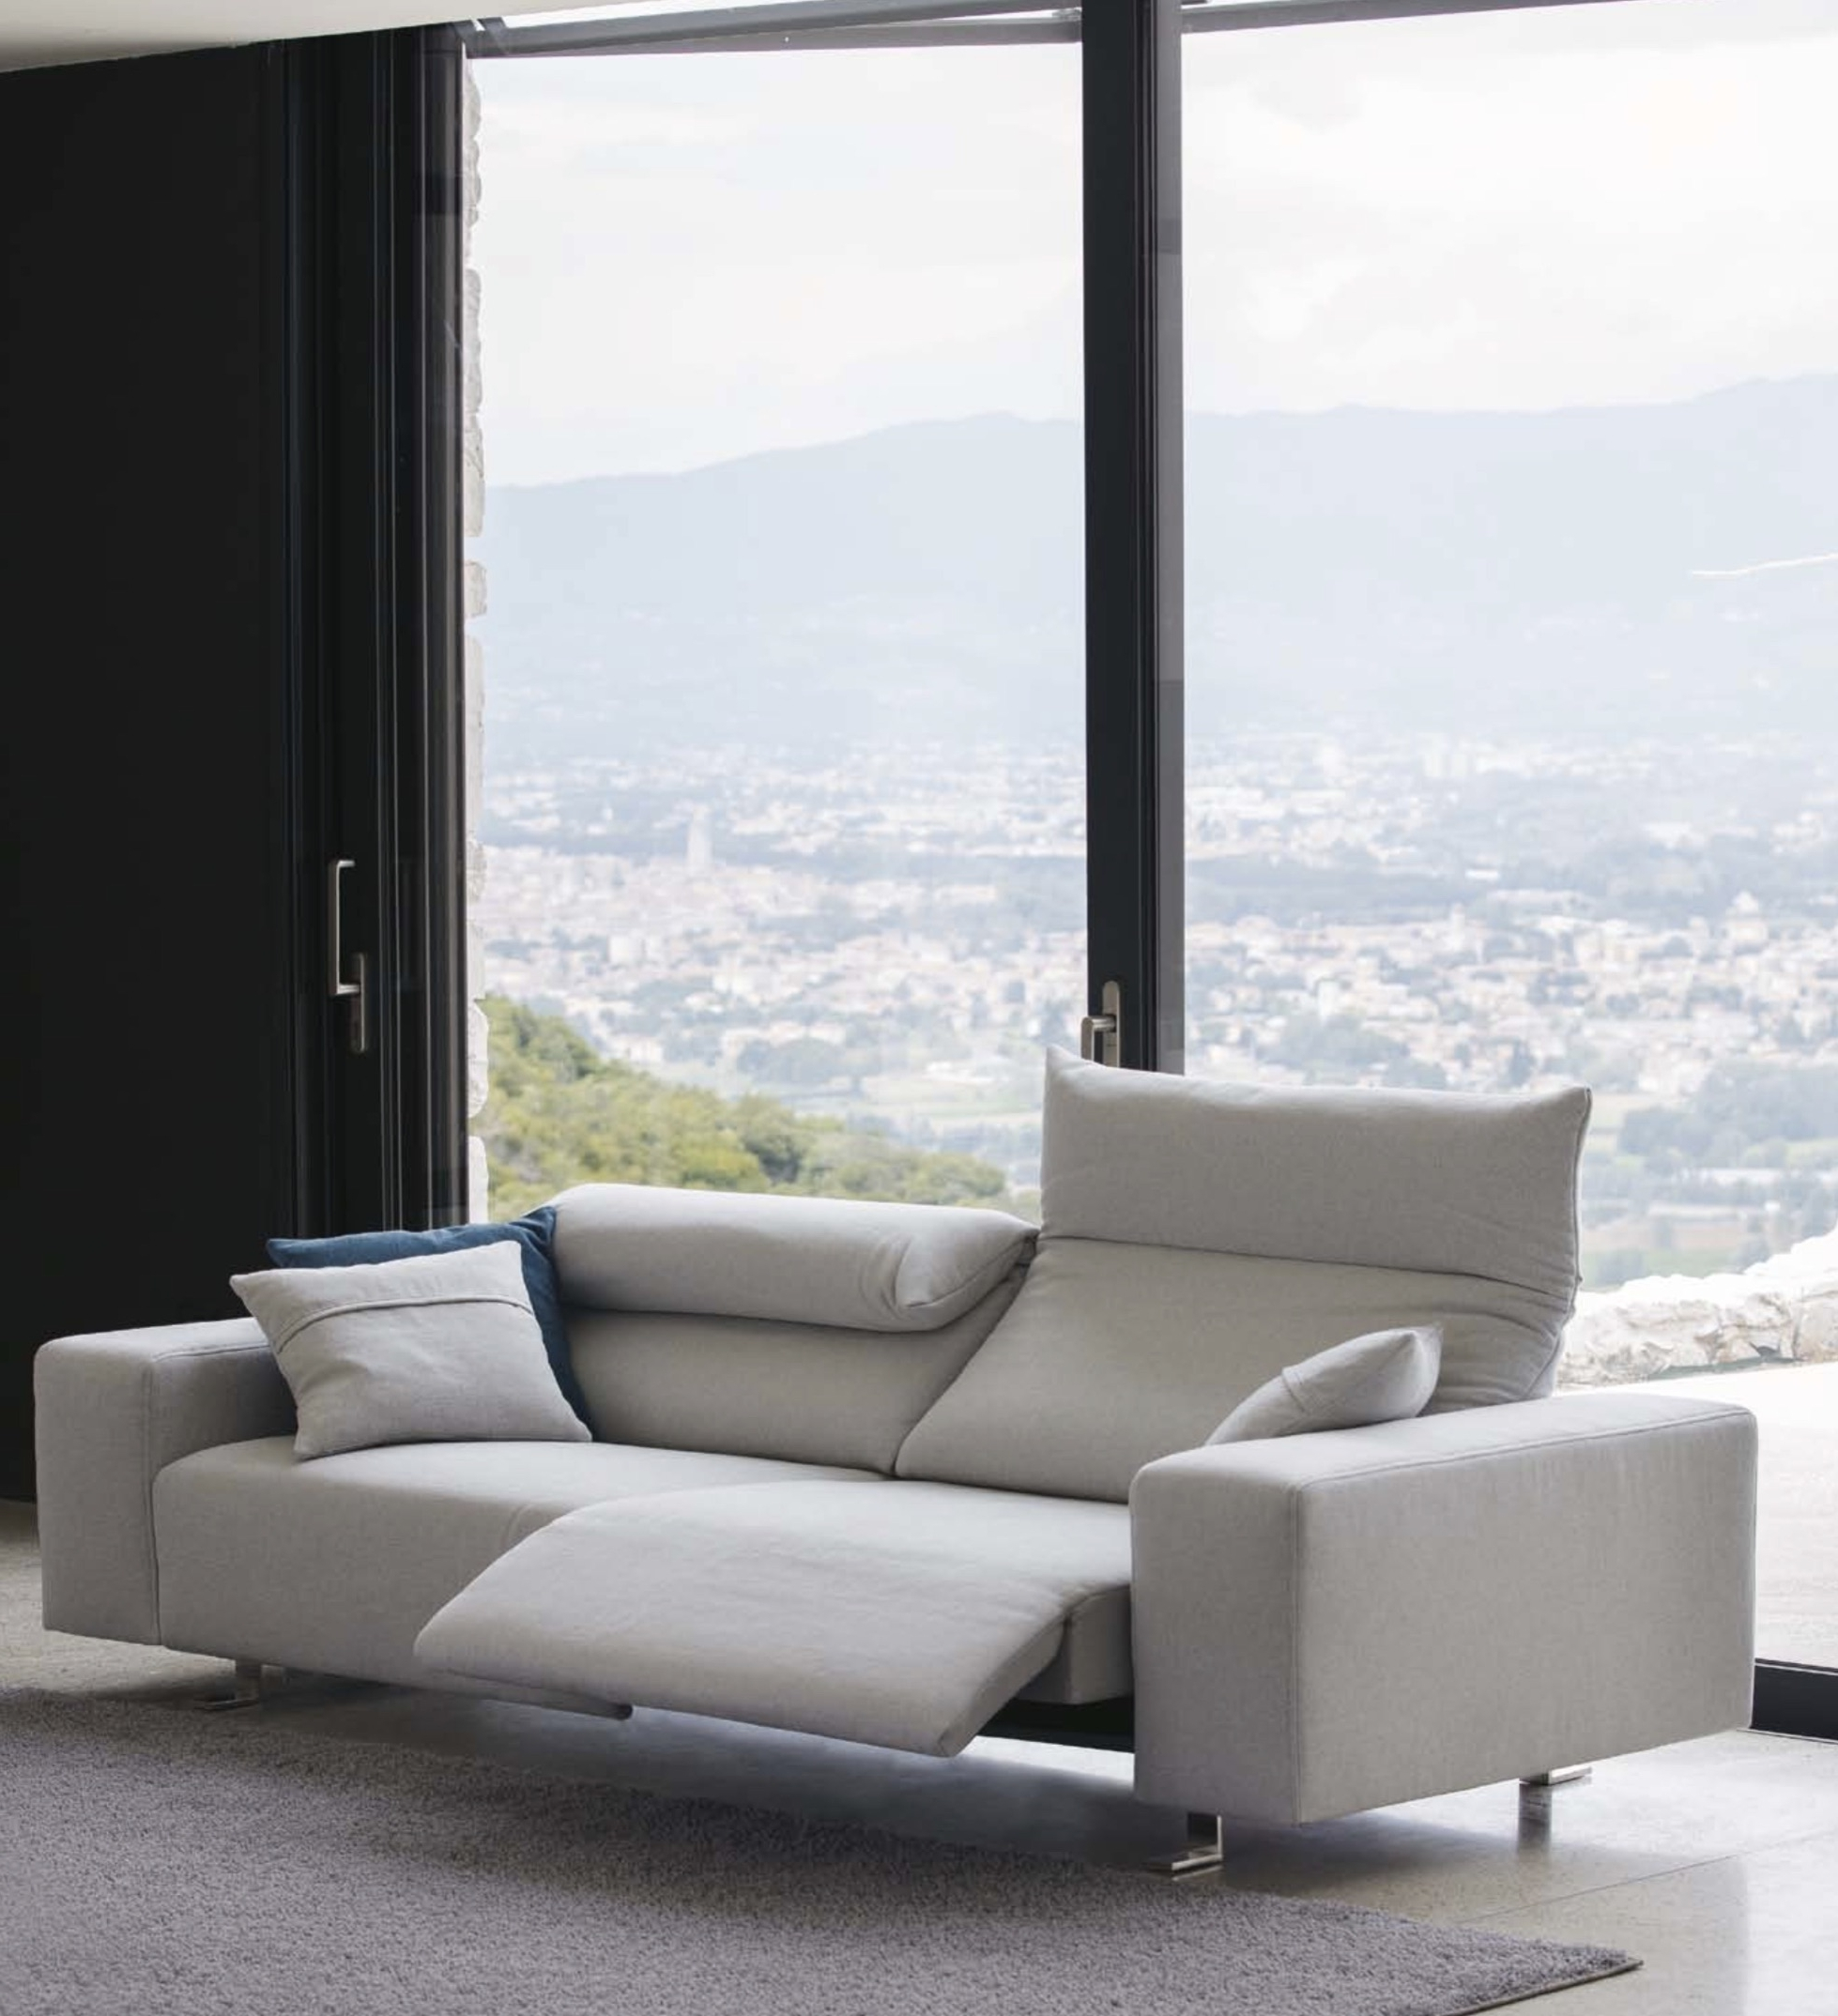 Modern Sofas In Most Popular Italian Designed Furniture Inspirational Italian Sofas At (View 7 of 20)